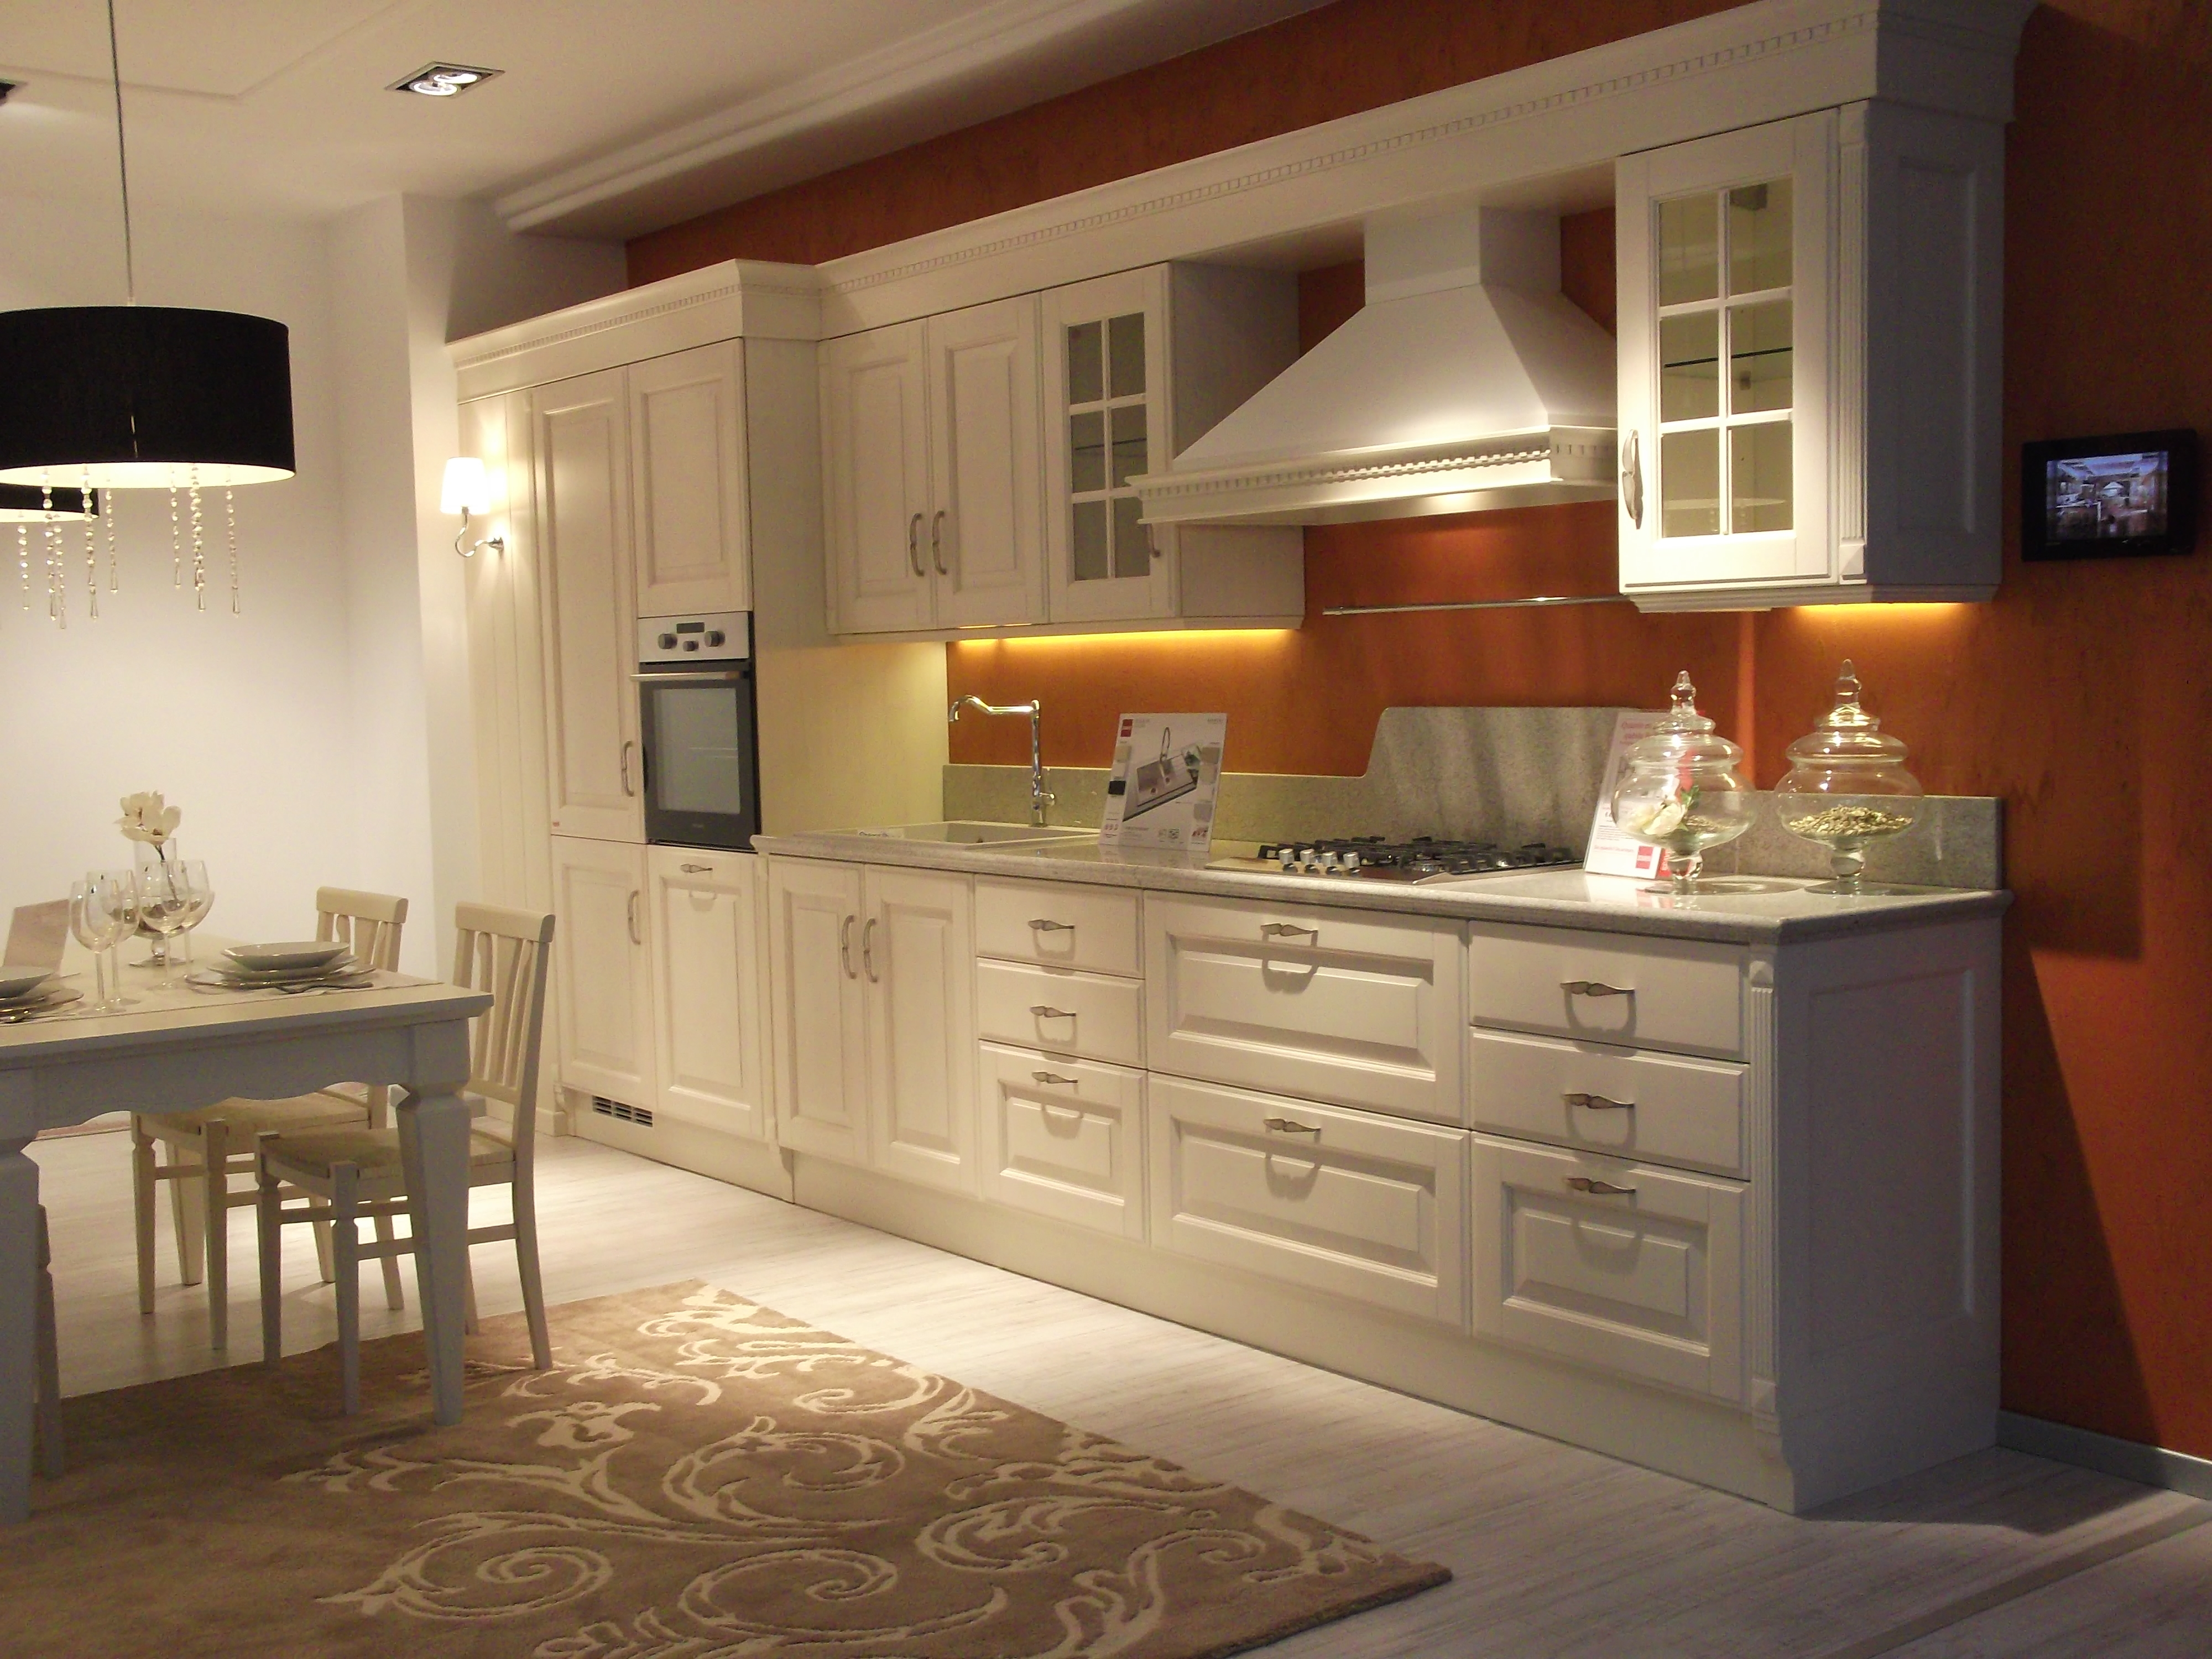 Cucina Baltimora Scavolini Prezzo - Home Design E Interior Ideas ...